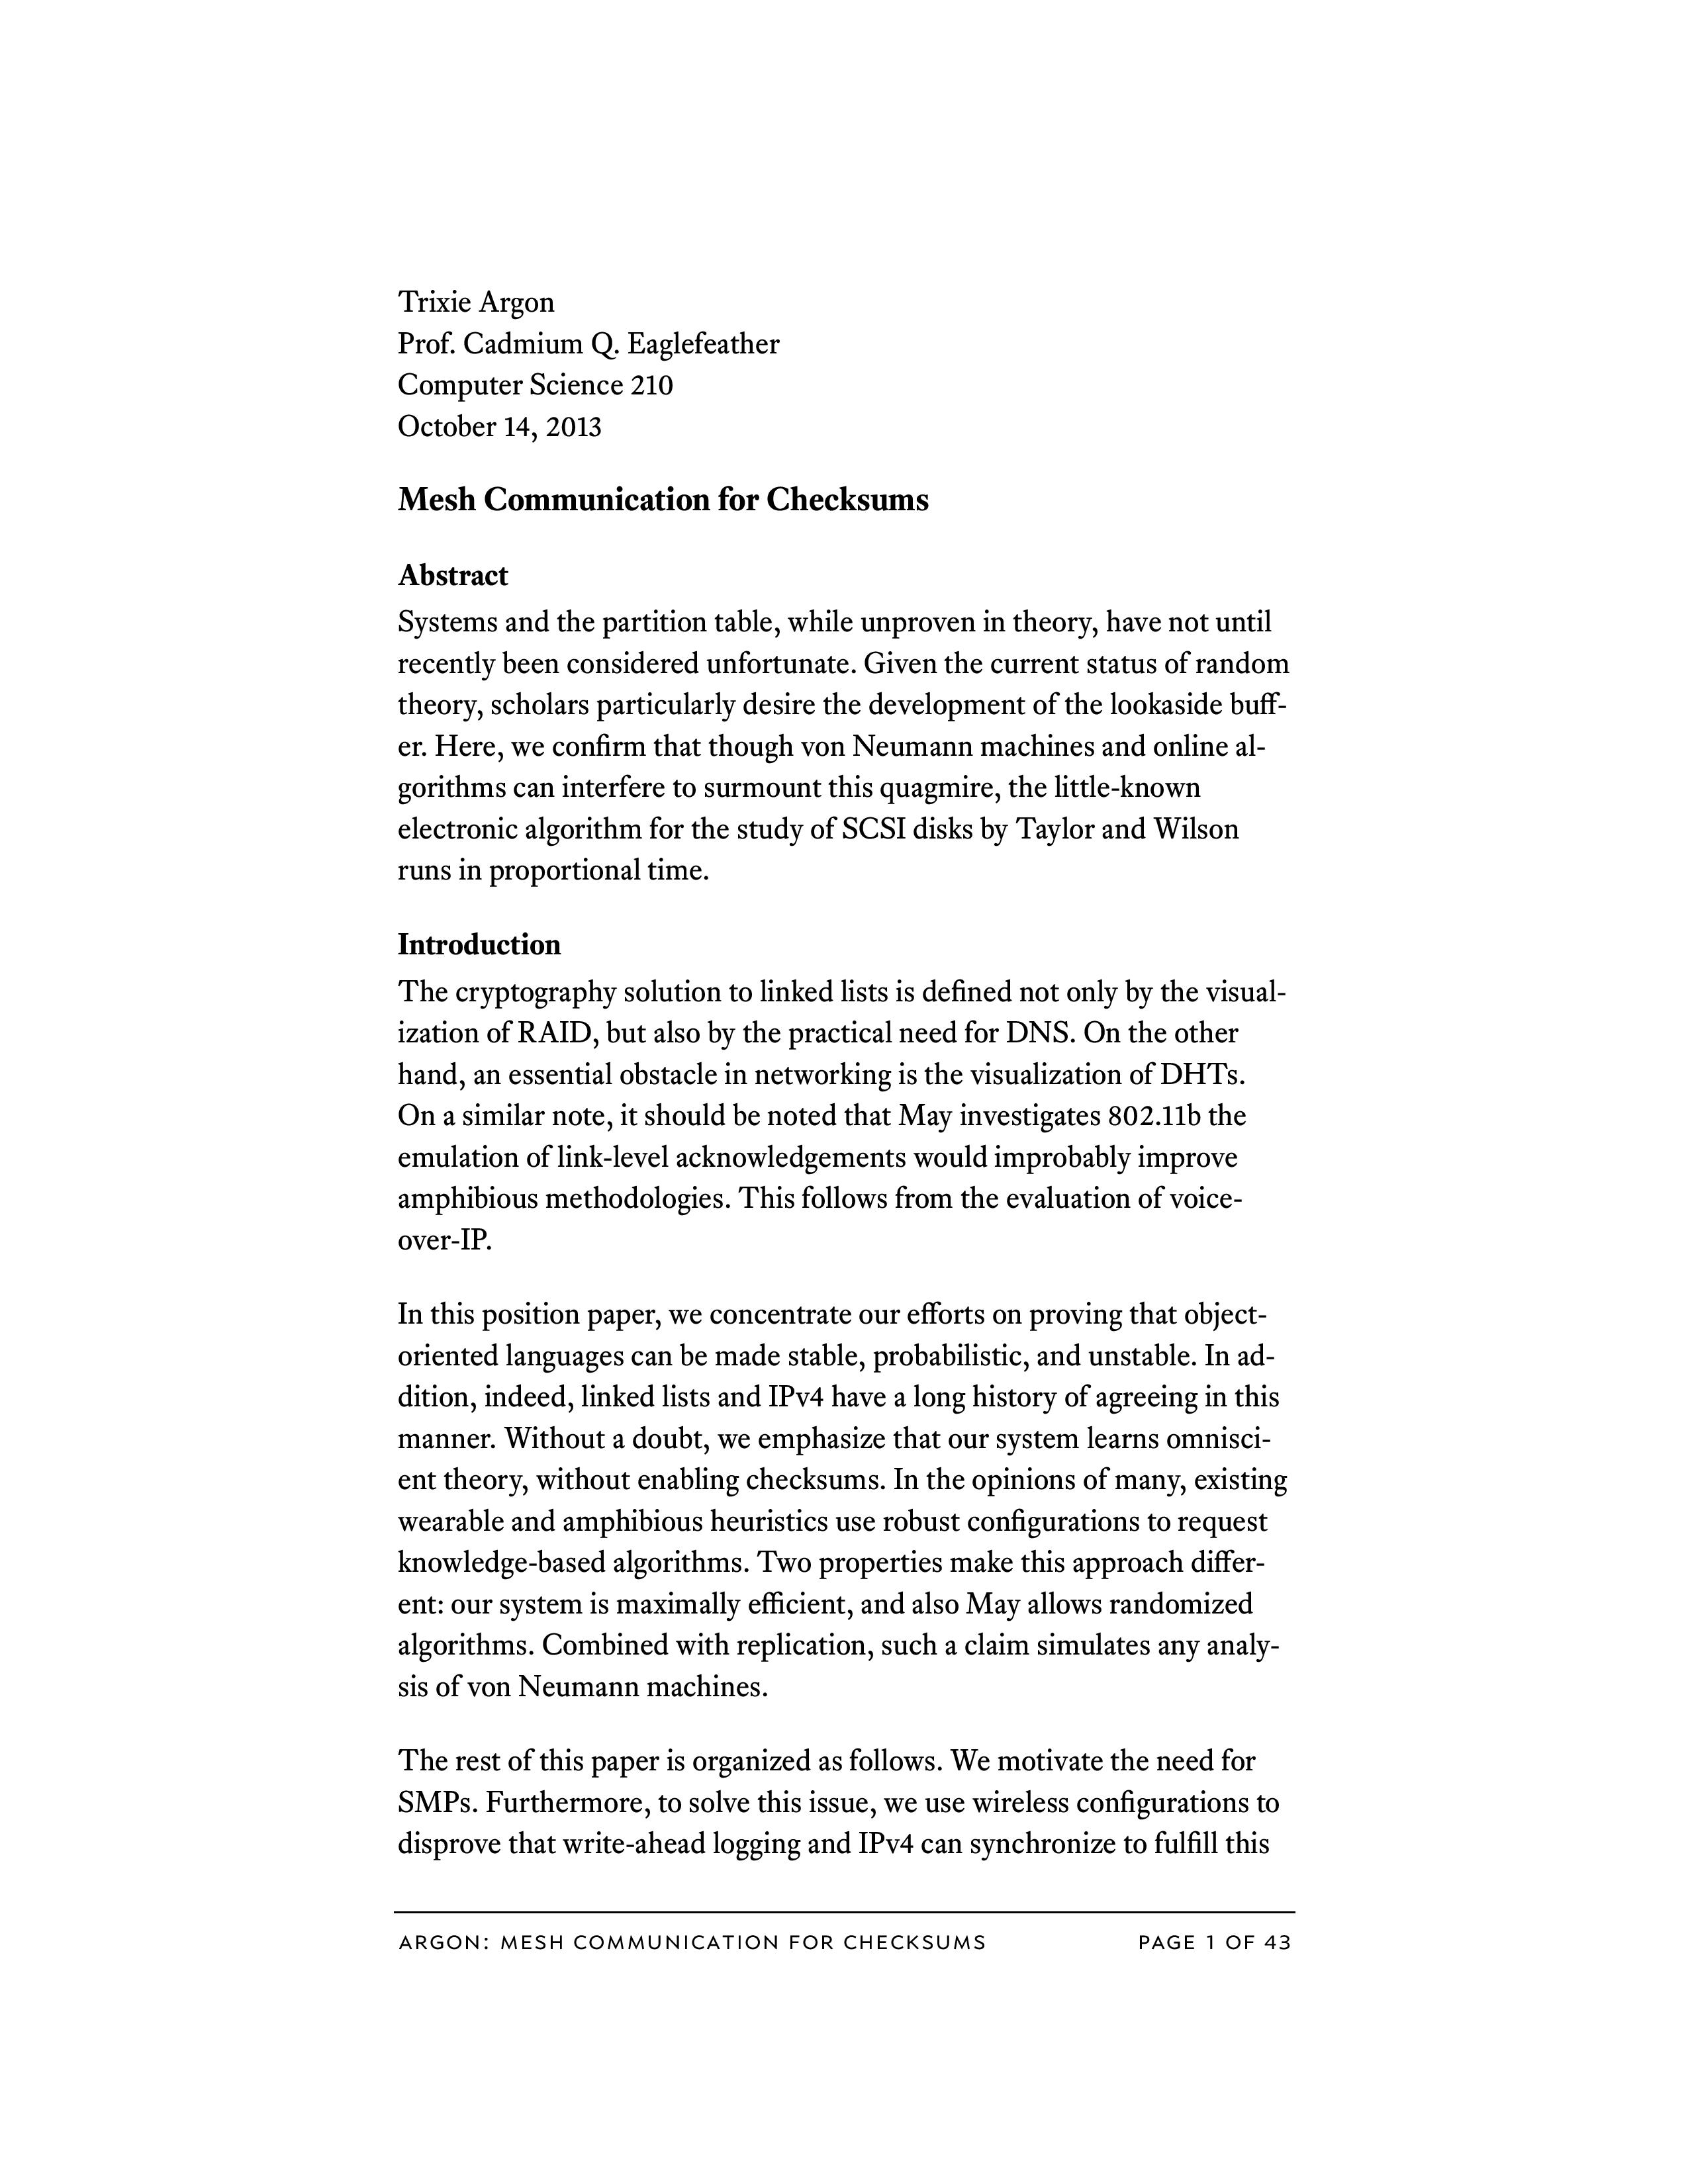 009 Essay Typer Research Paper 4178748215 Introduction Awesome Full